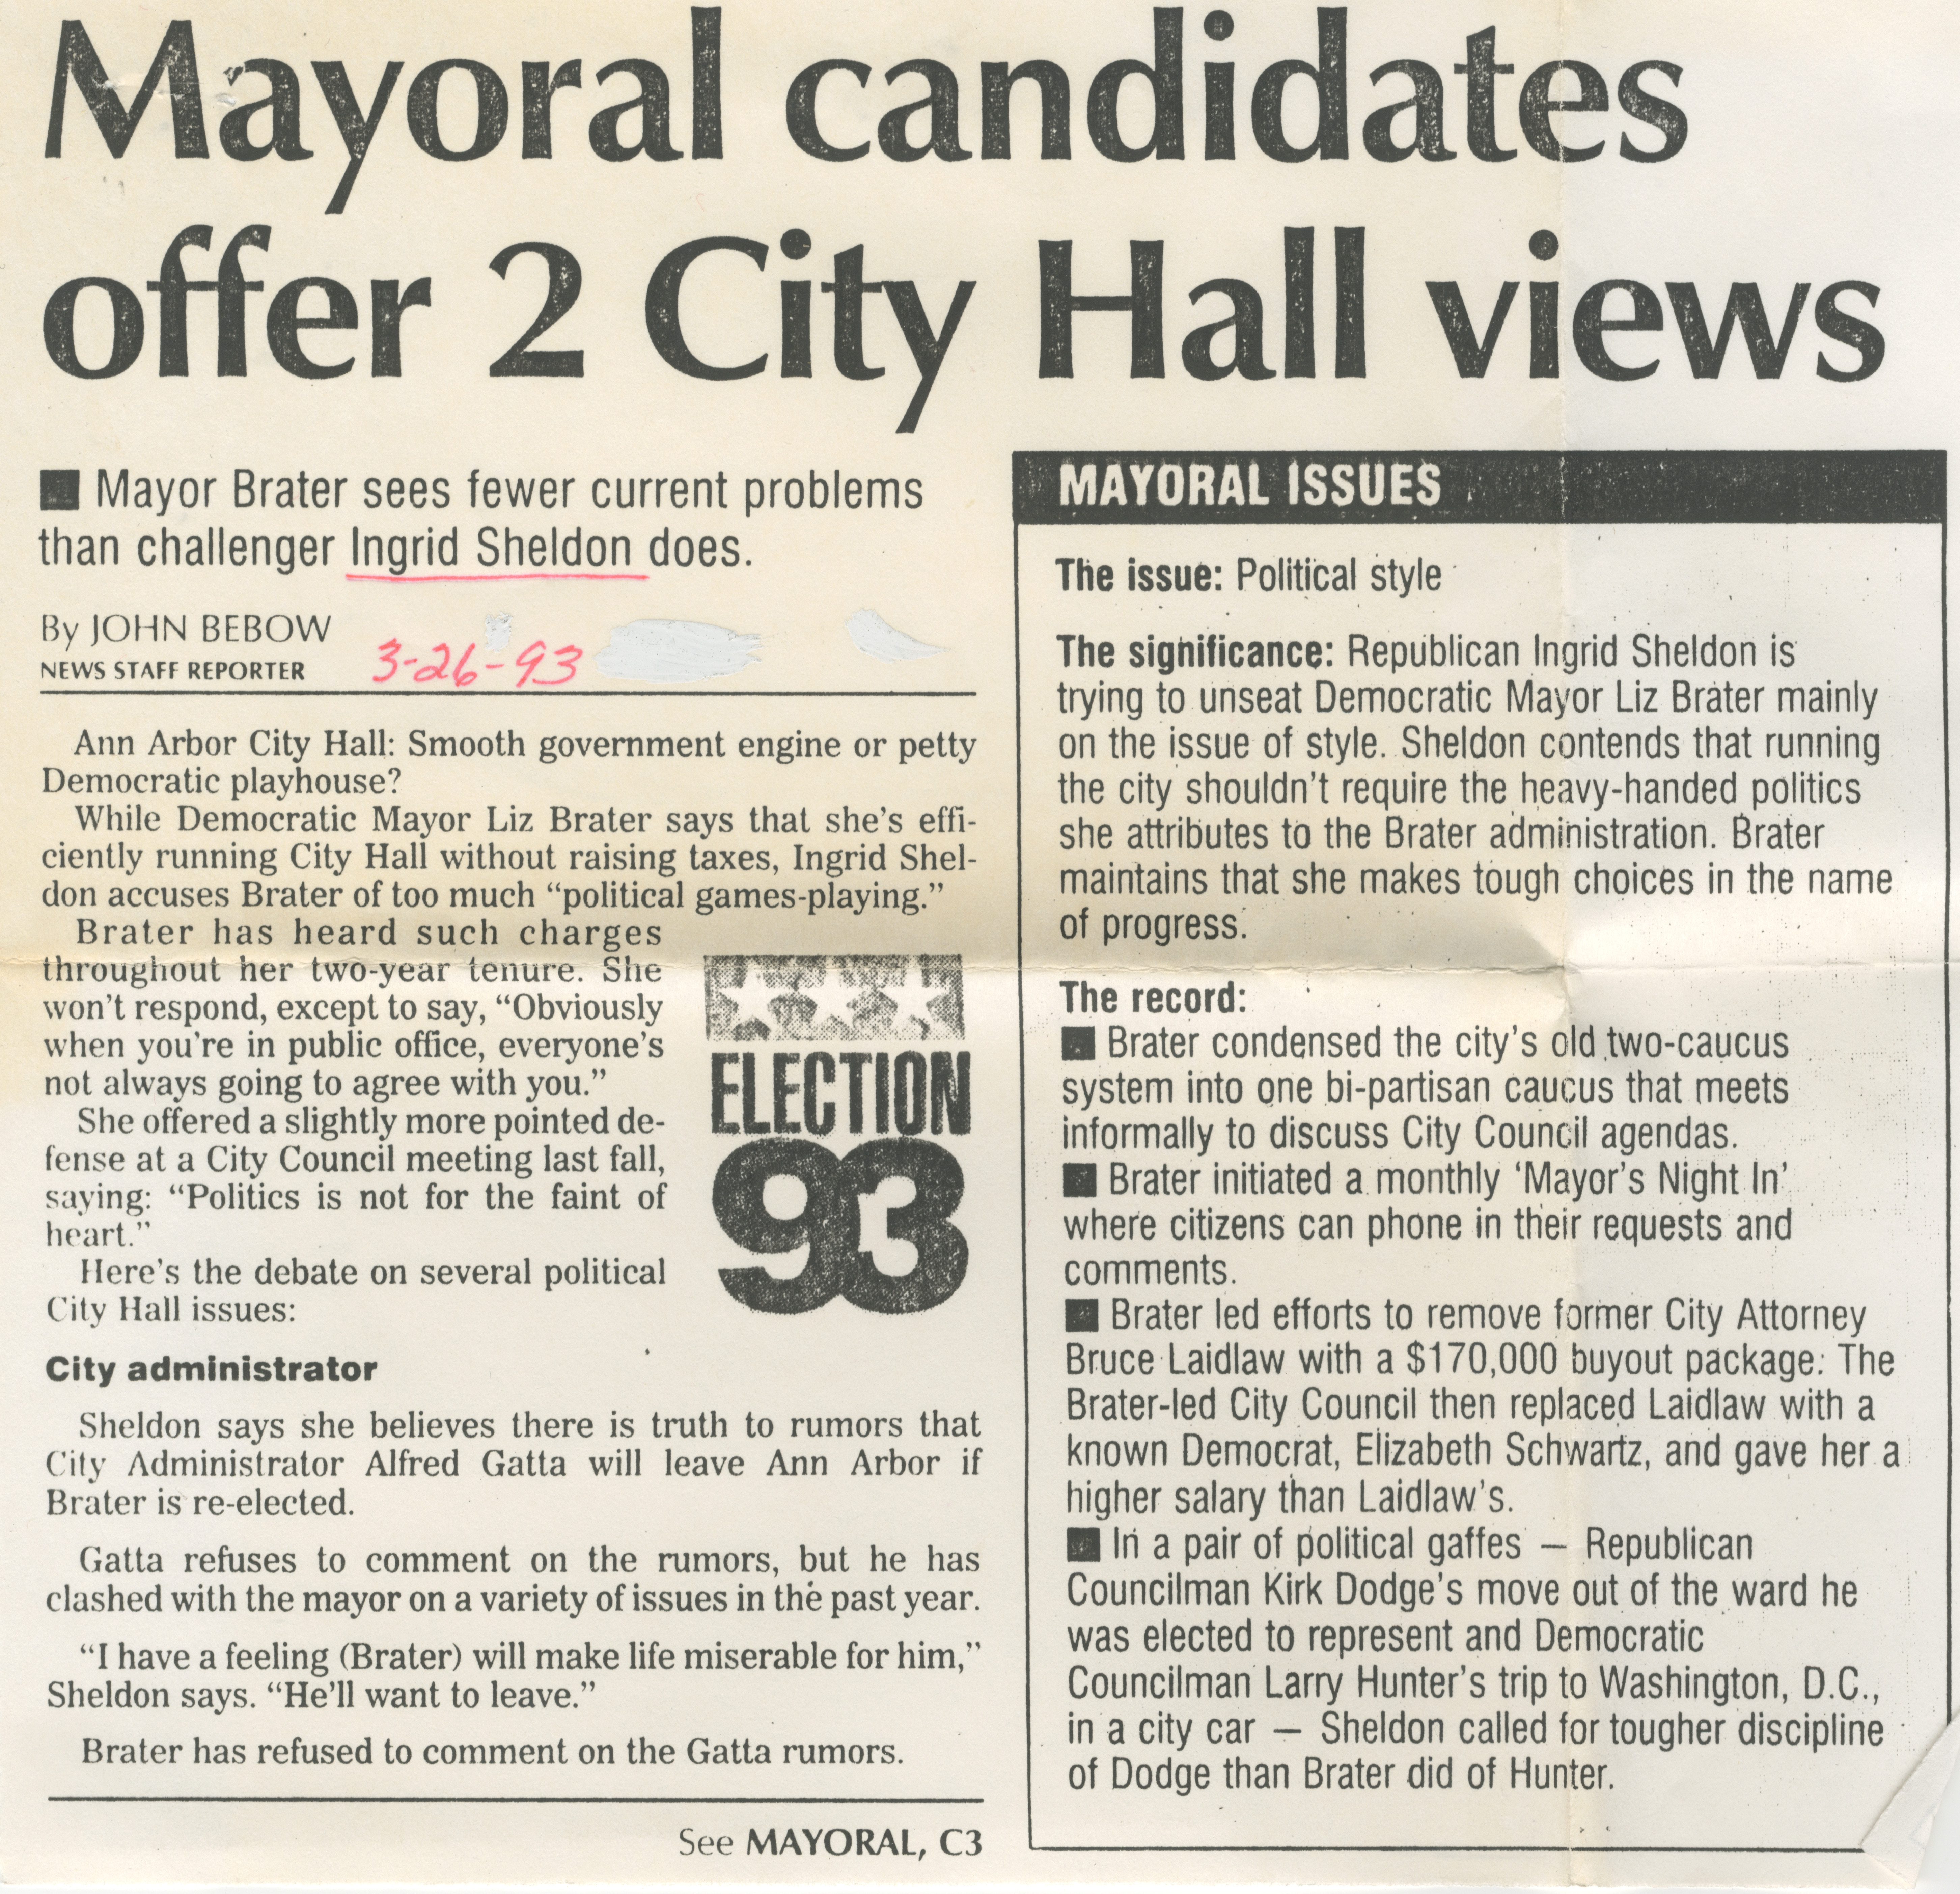 Mayoral candidates offer 2 City Hall views image